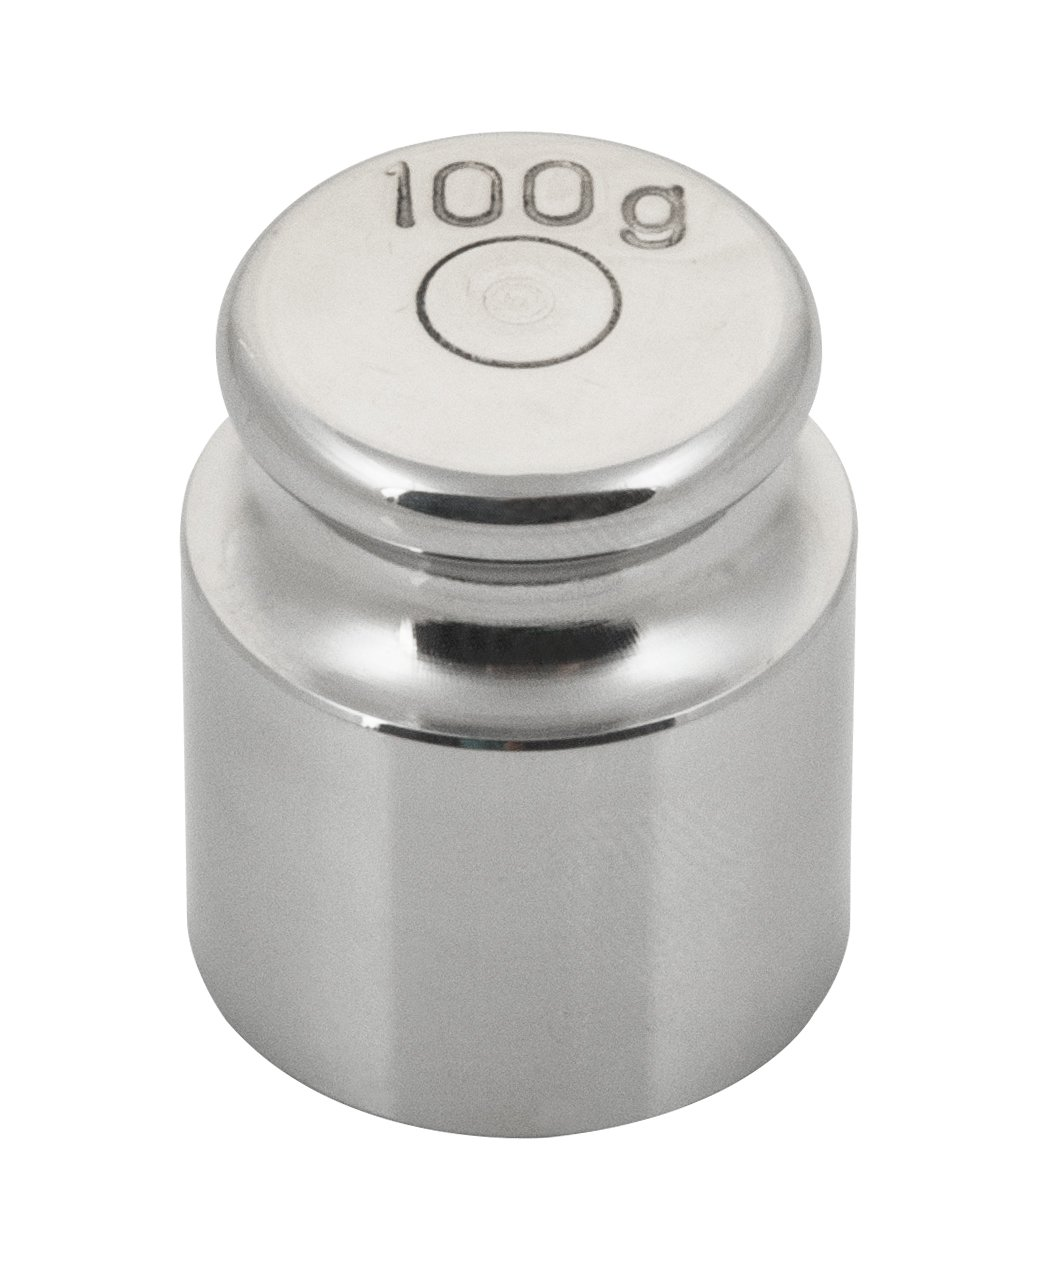 100g Balance Weight, Stainless Steel, Spare, Eisco Labs